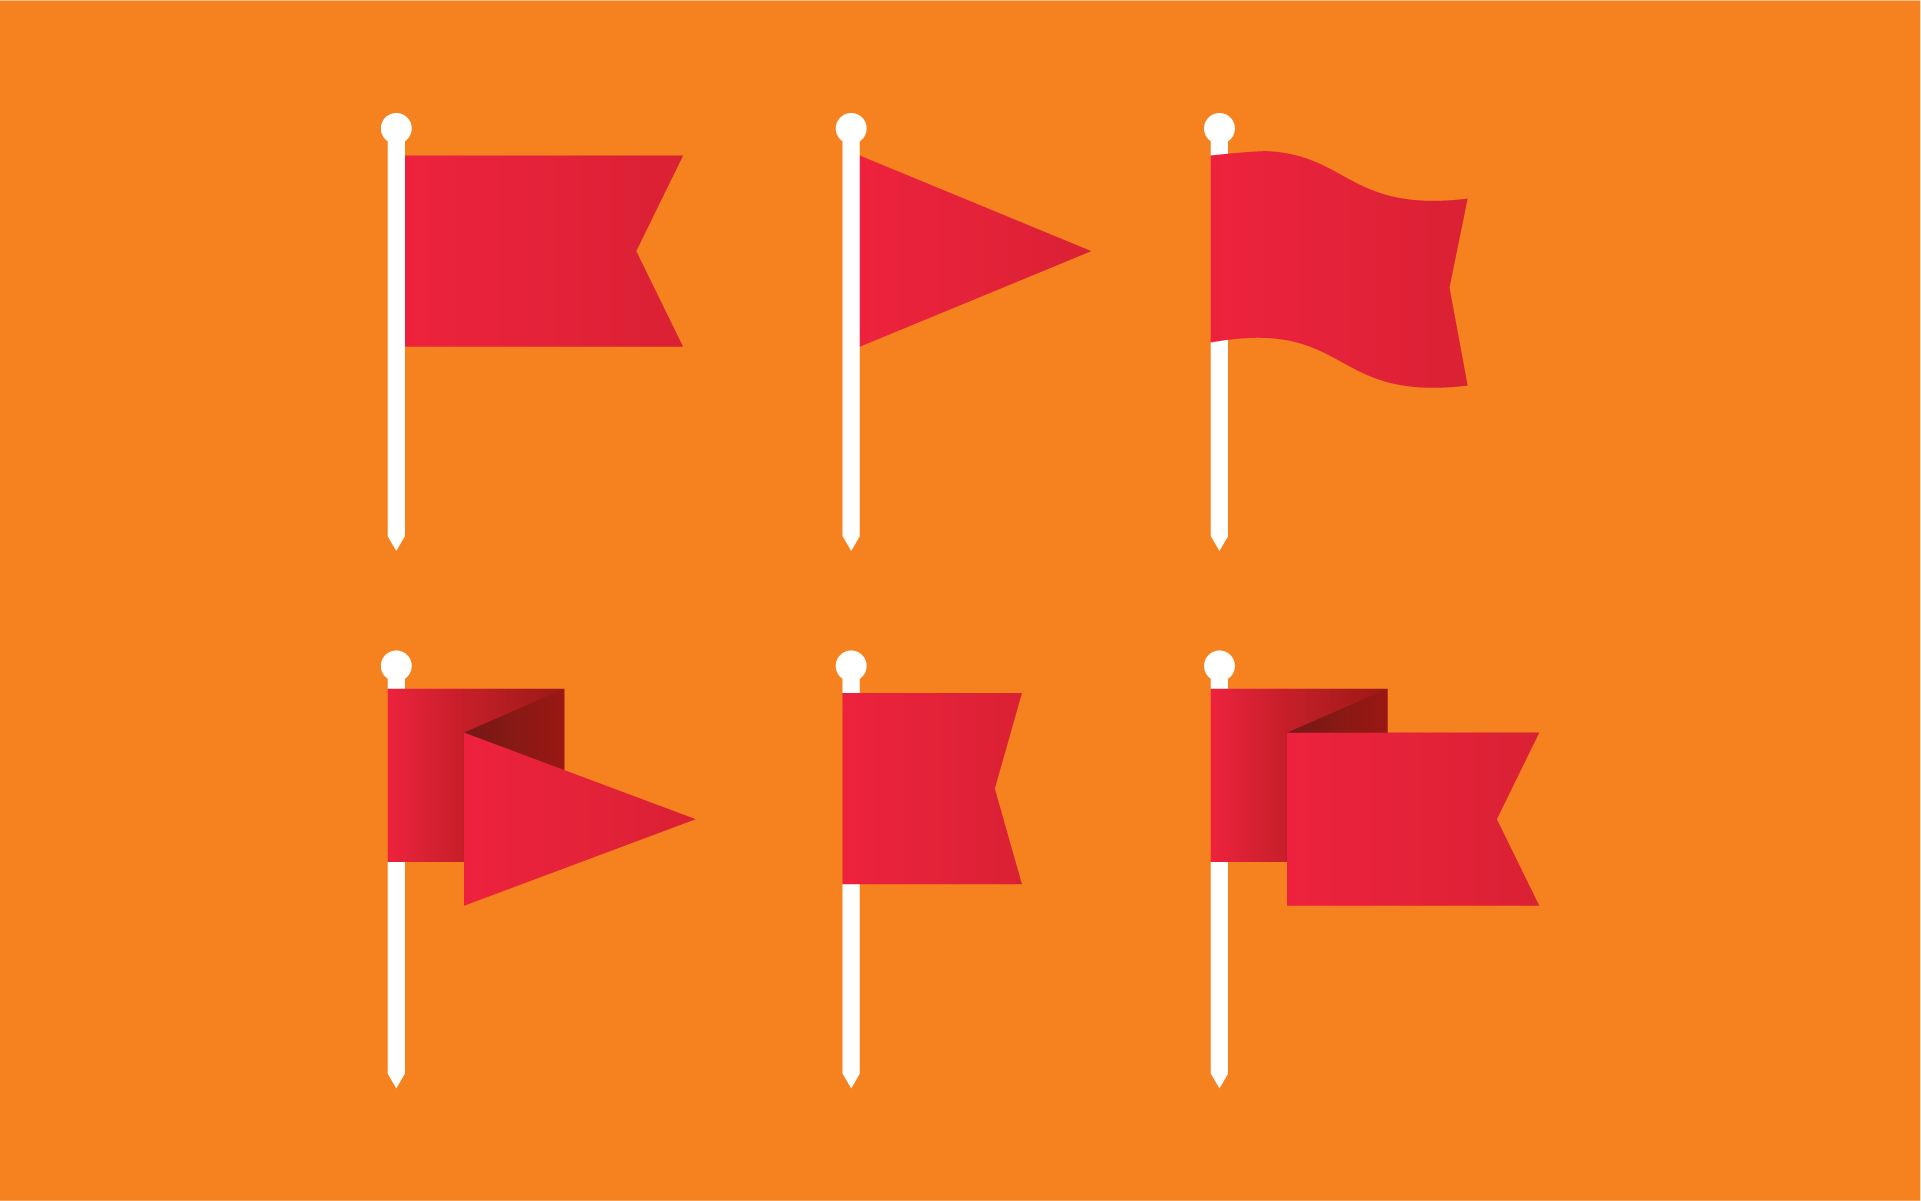 6 Red Flags to Watch for before Signing with a Manager, Agent, or A&R Rep